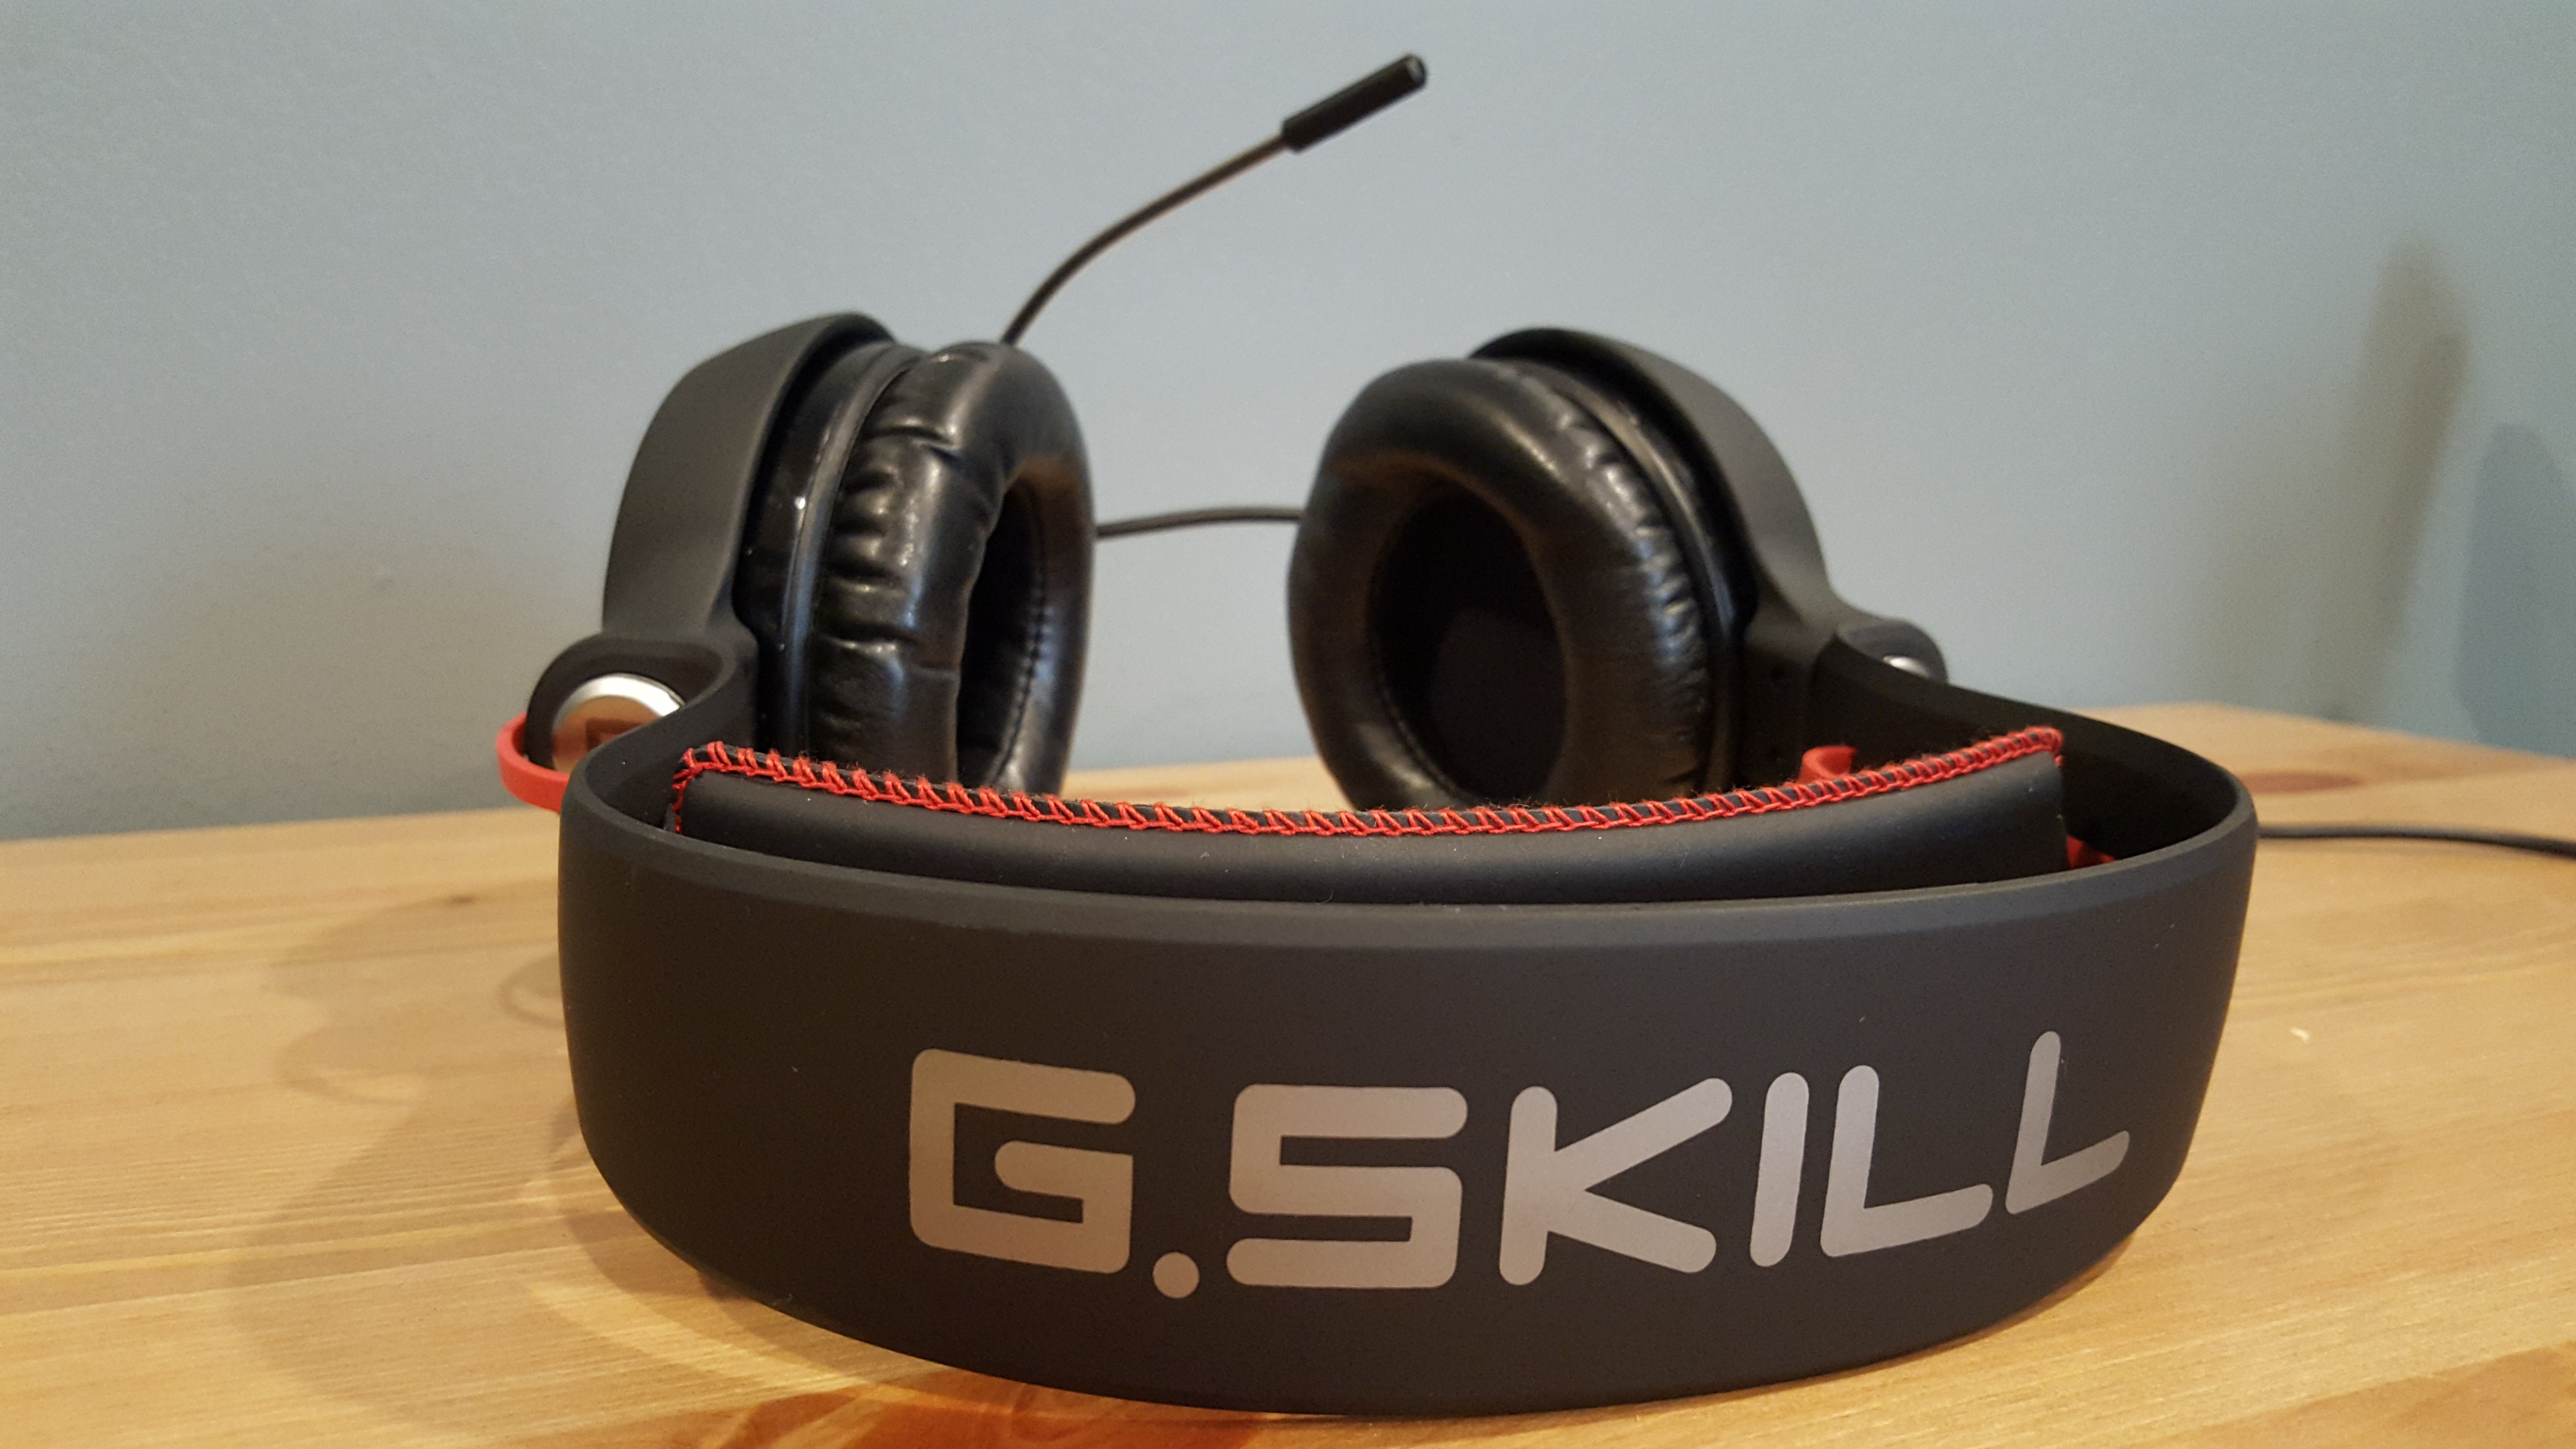 G Skill Ripjaws SR910 review: Fancy features don't always